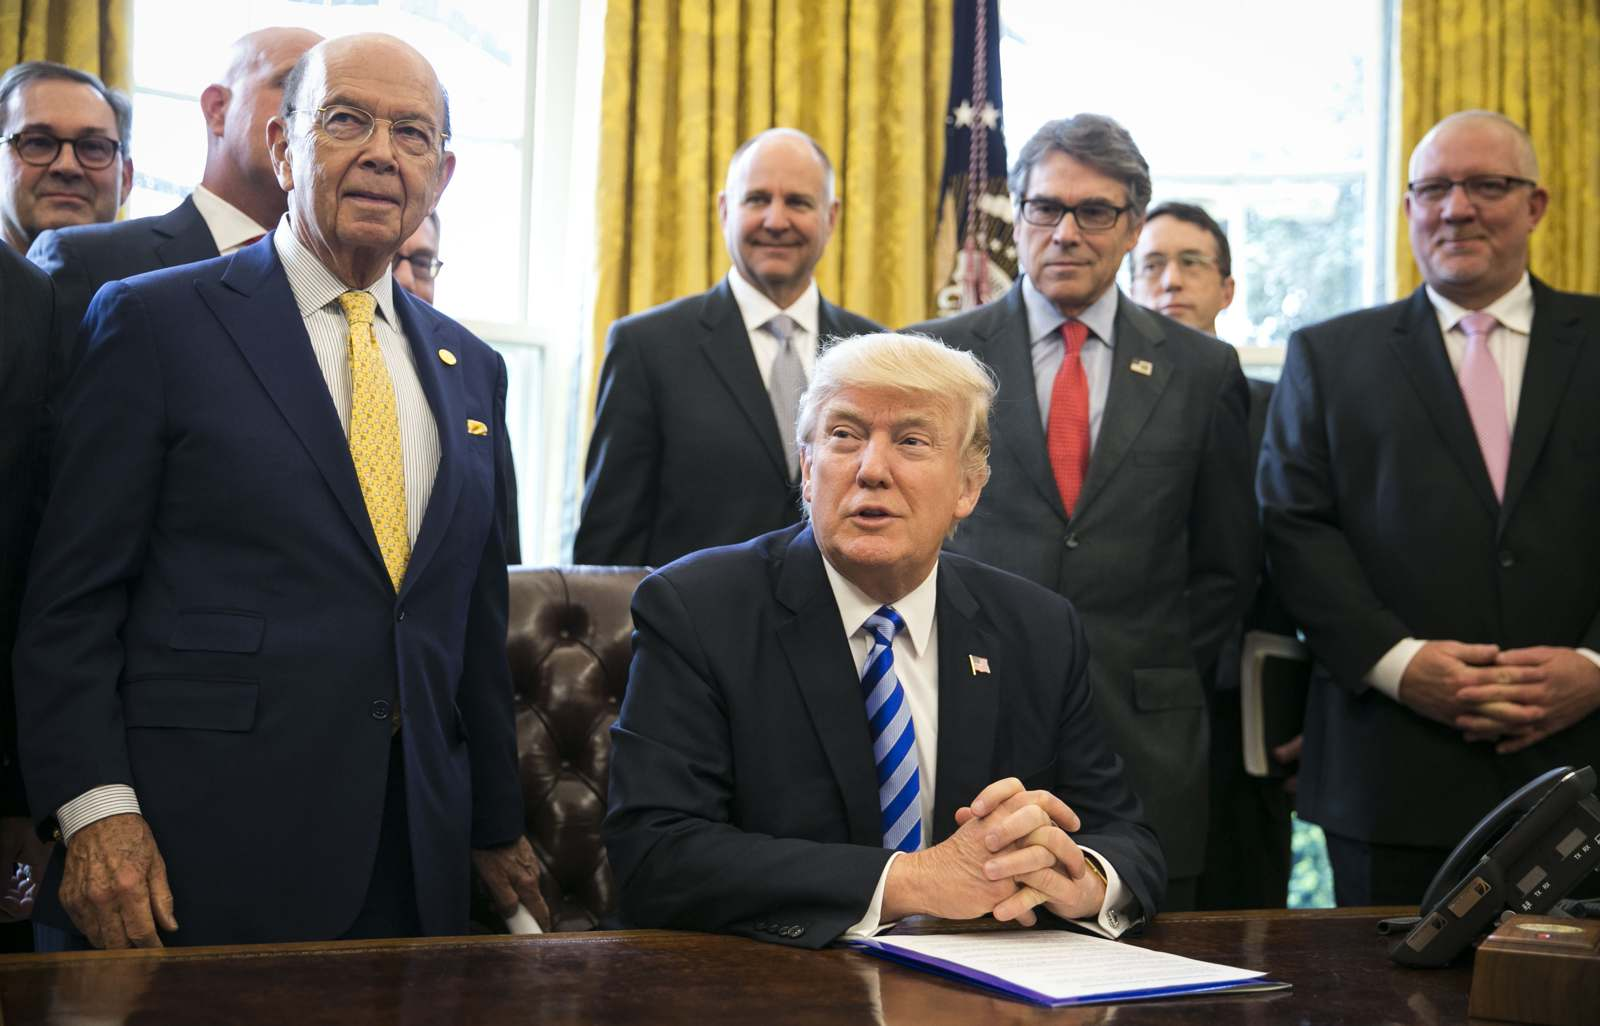 President Donald Trump announces that his administration will issue a permit for the construction of the Keystone XL pipeline March 24, 2017. (Al Drago/The New York Times)